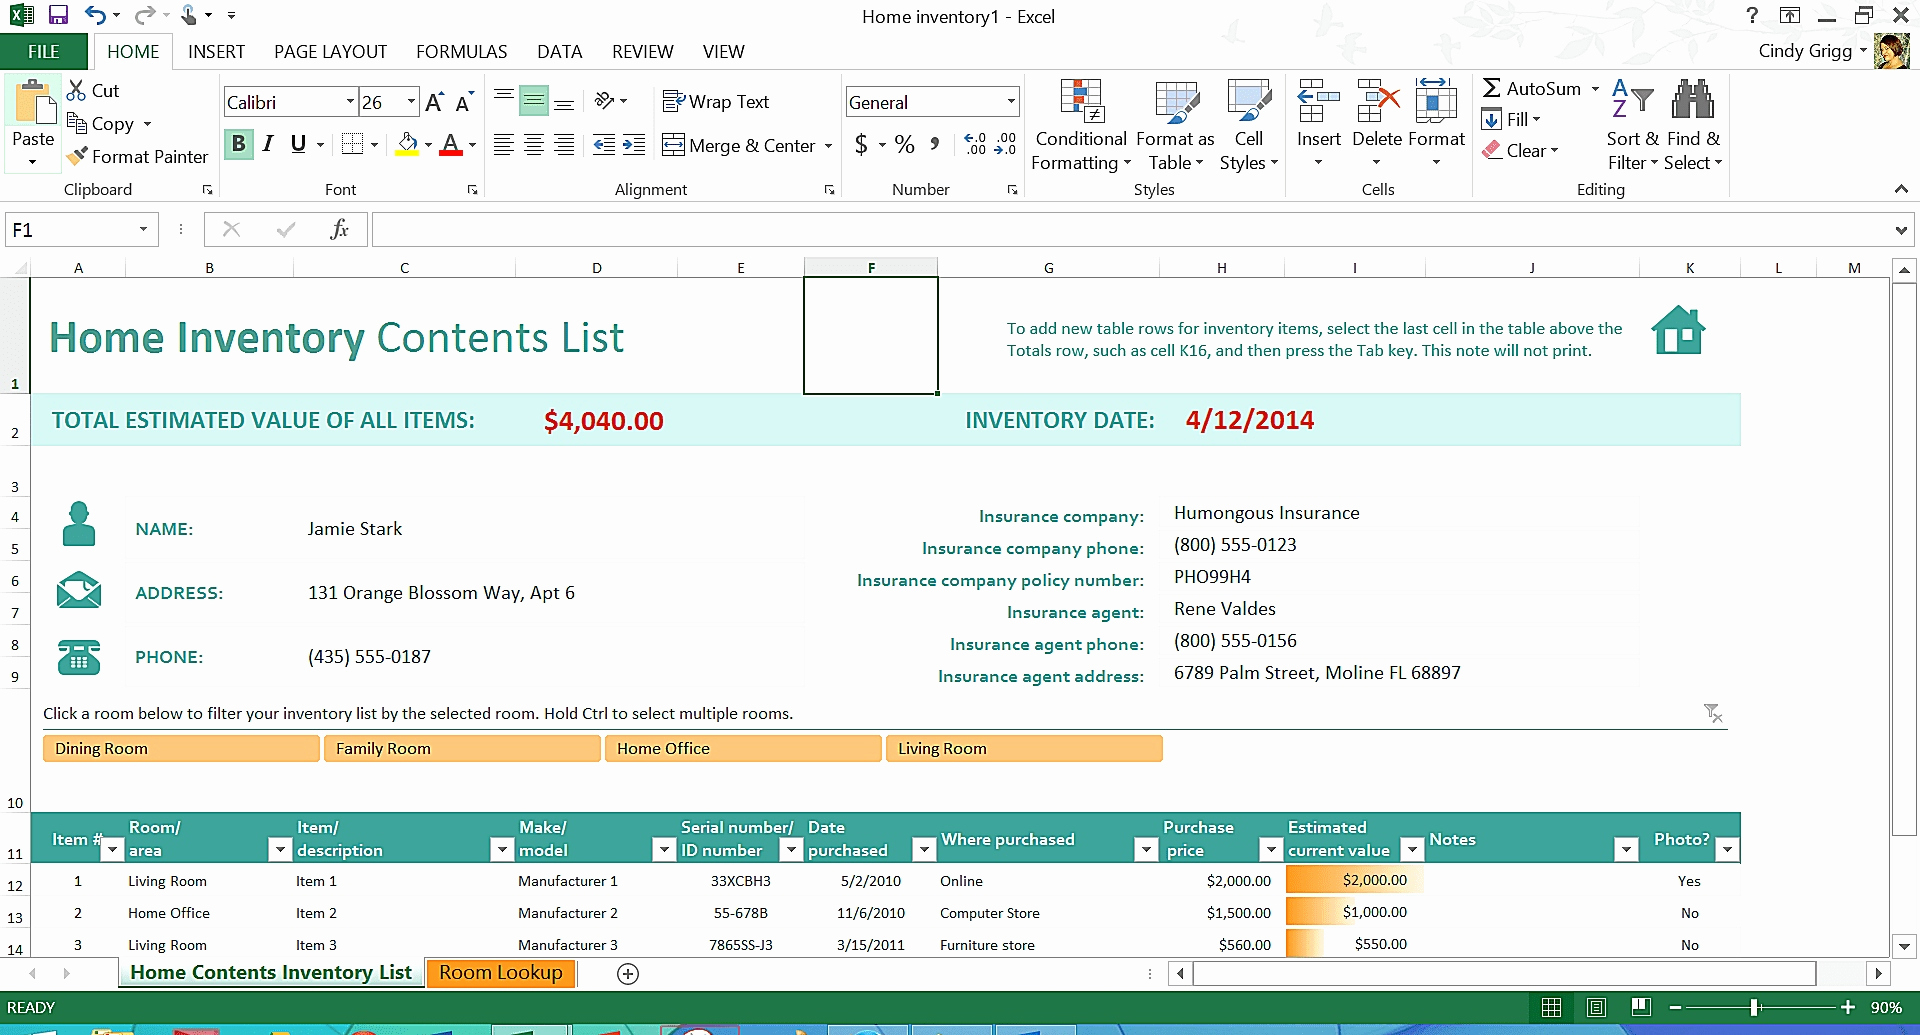 Home Inventory Spreadsheet Intended For Home Inventory Spreadsheet For Moving Food Google Docs Up  Askoverflow